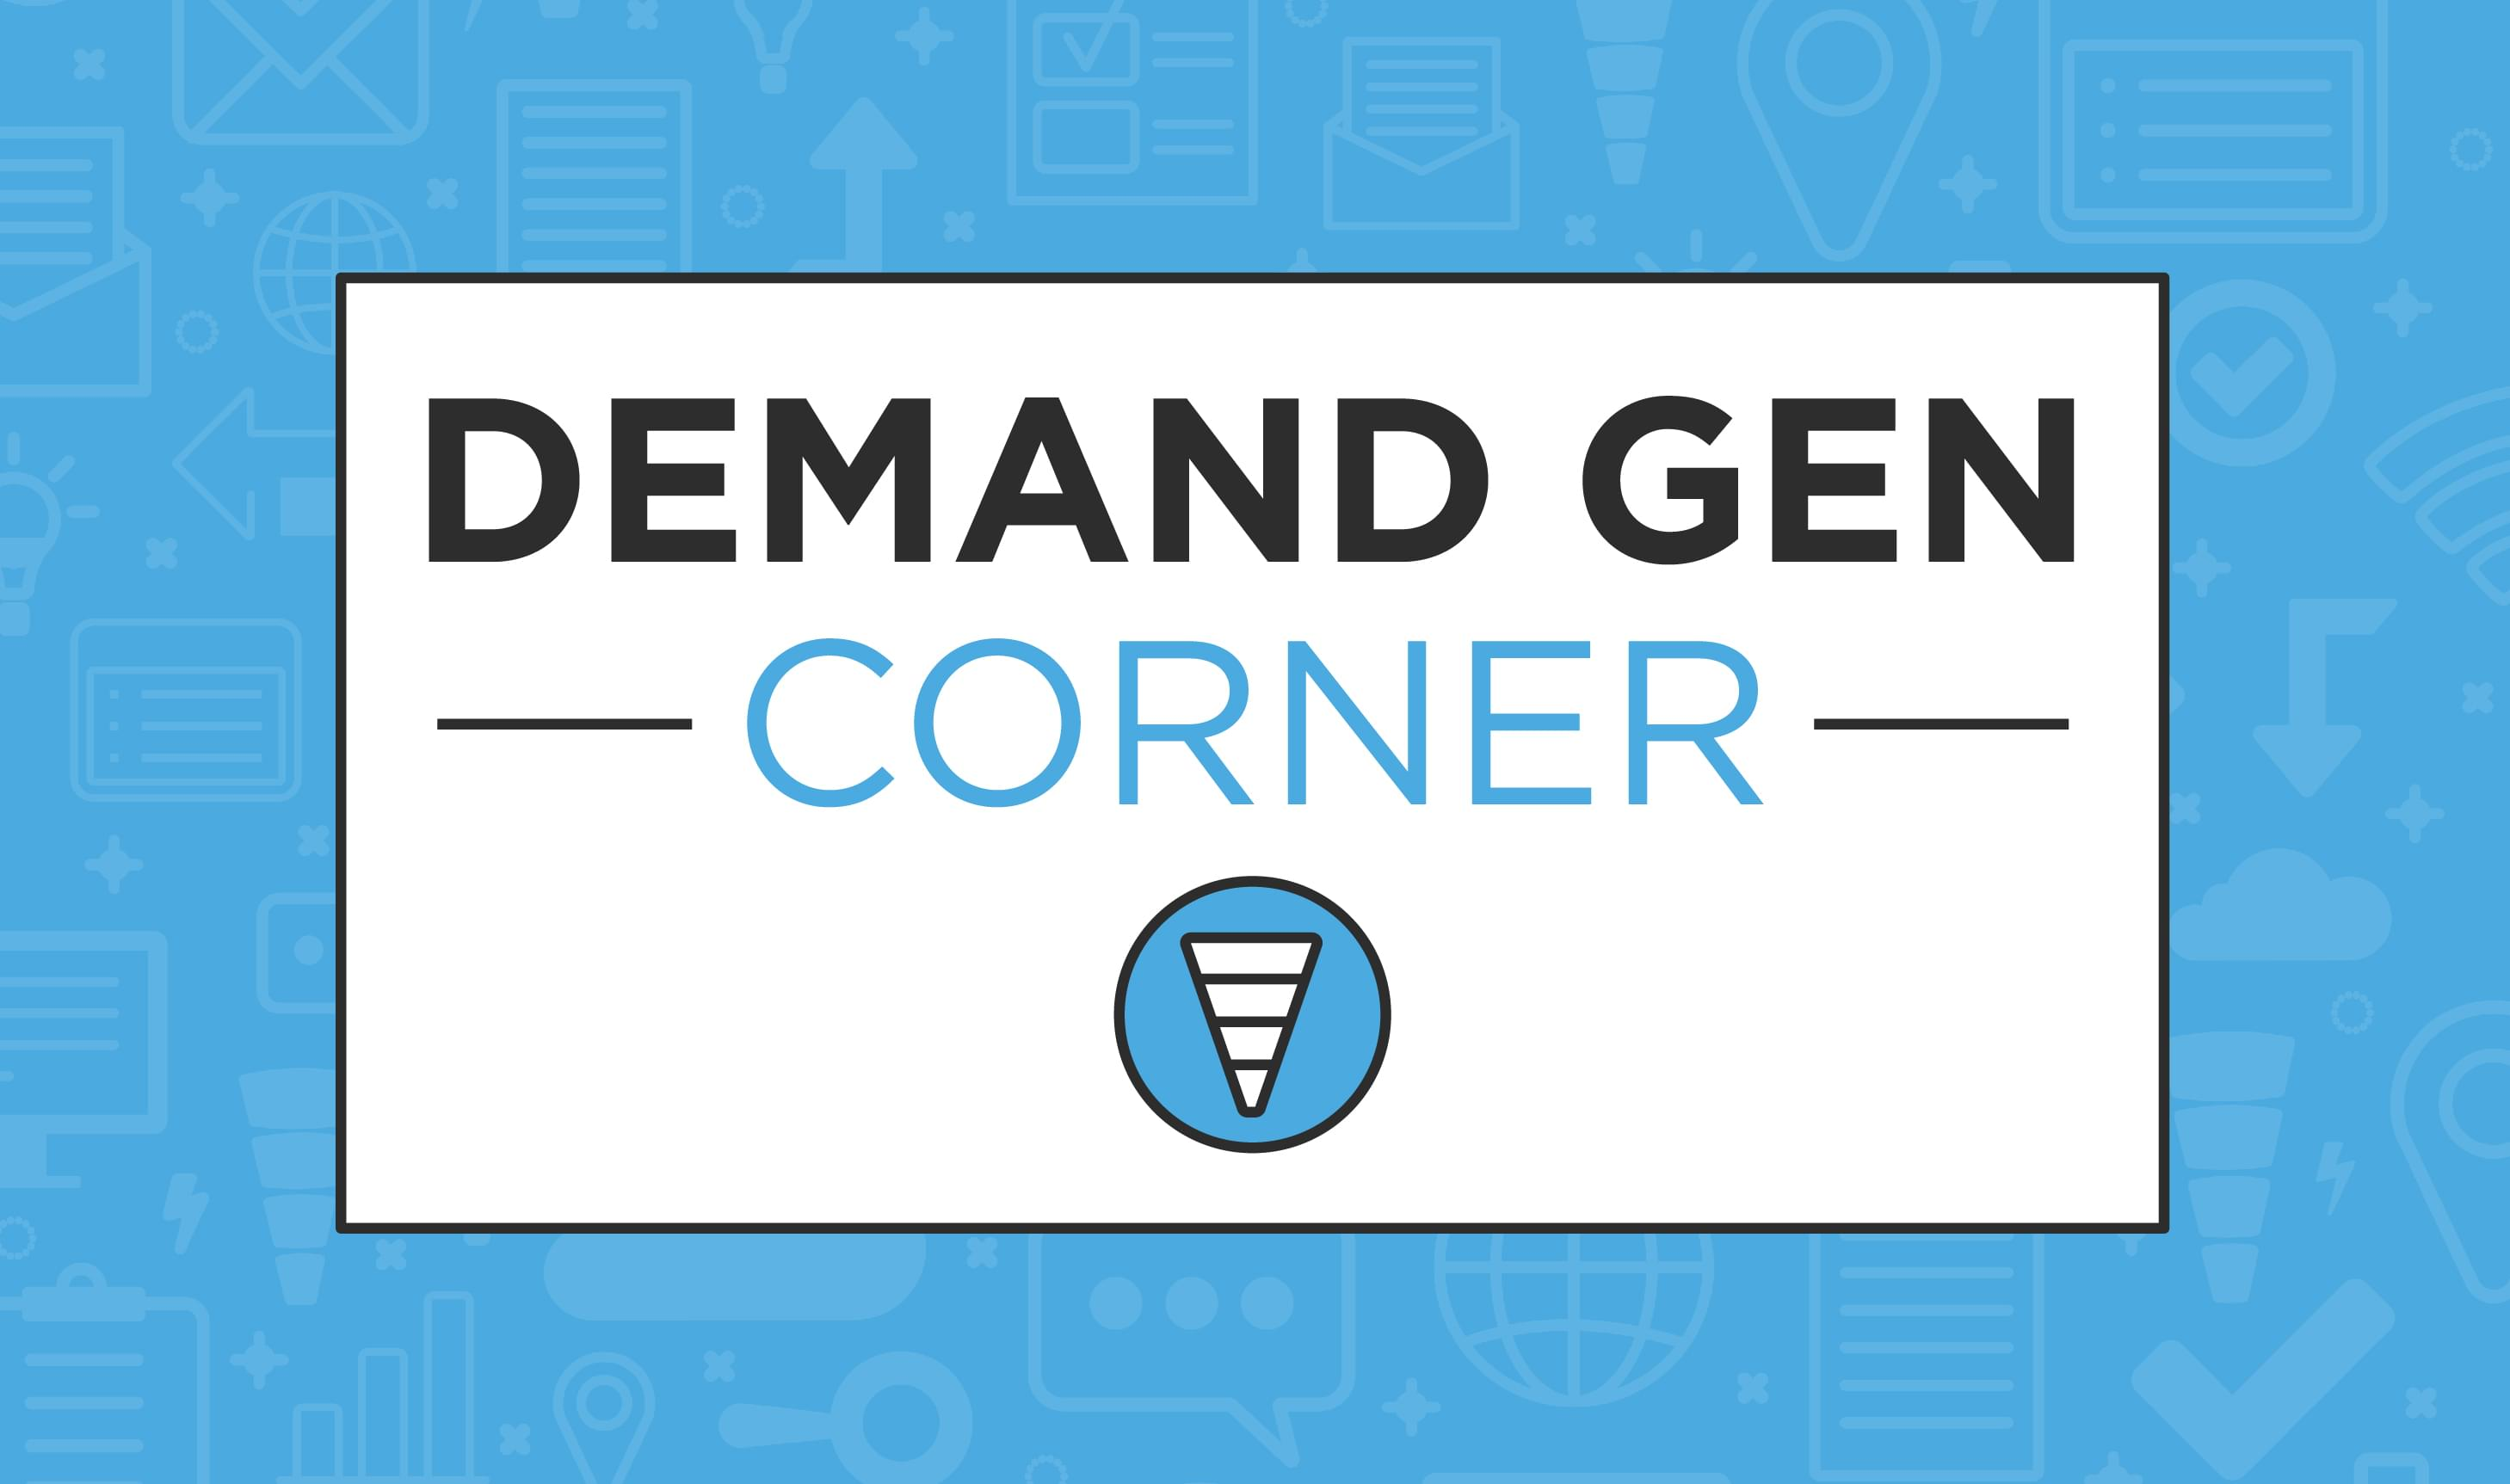 Demand Gen Corner - Account-Based Marketing